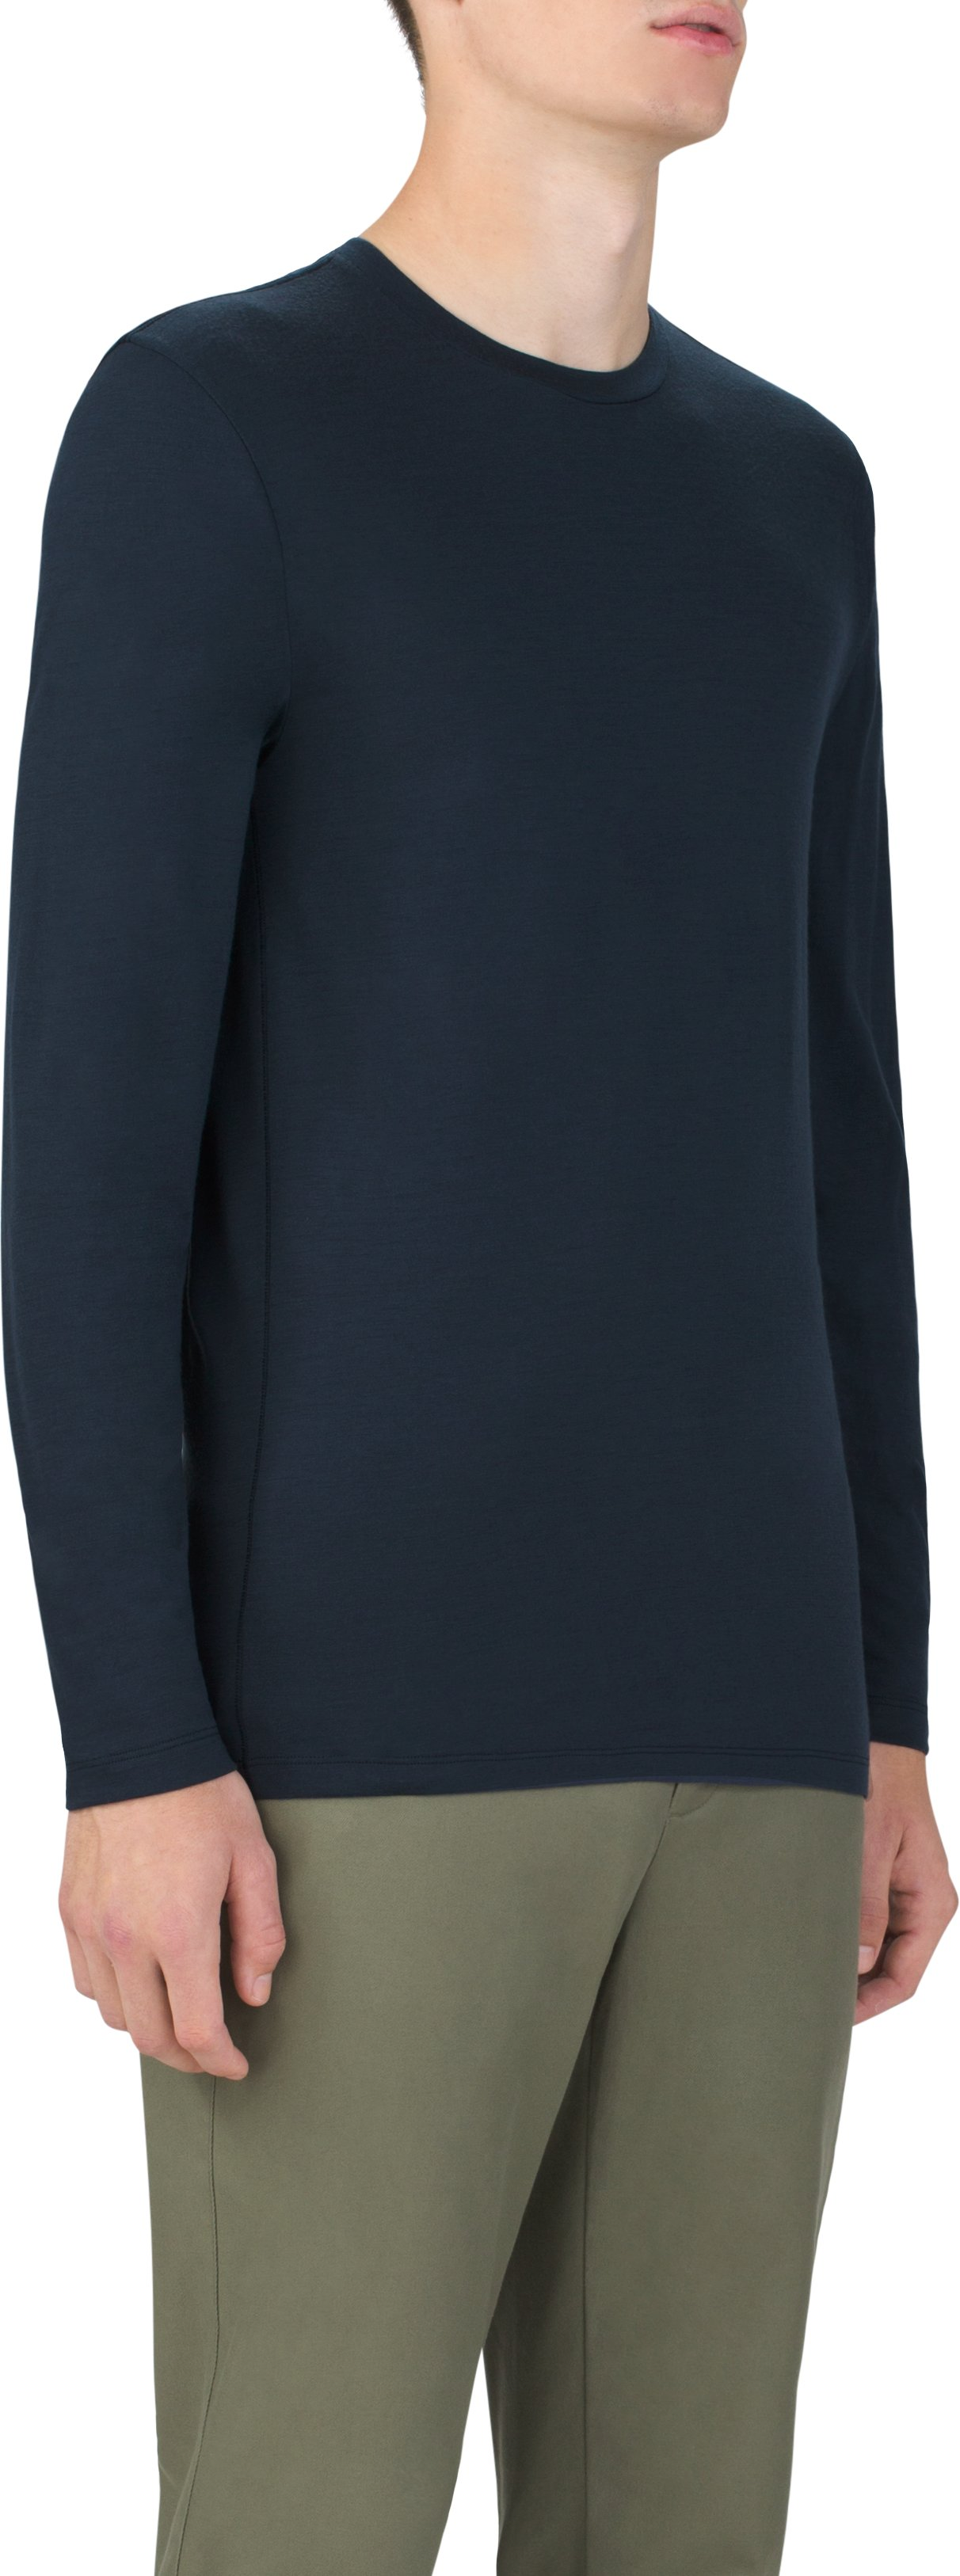 Men's Prime Long Sleeve Crew, Navy, zoomed image